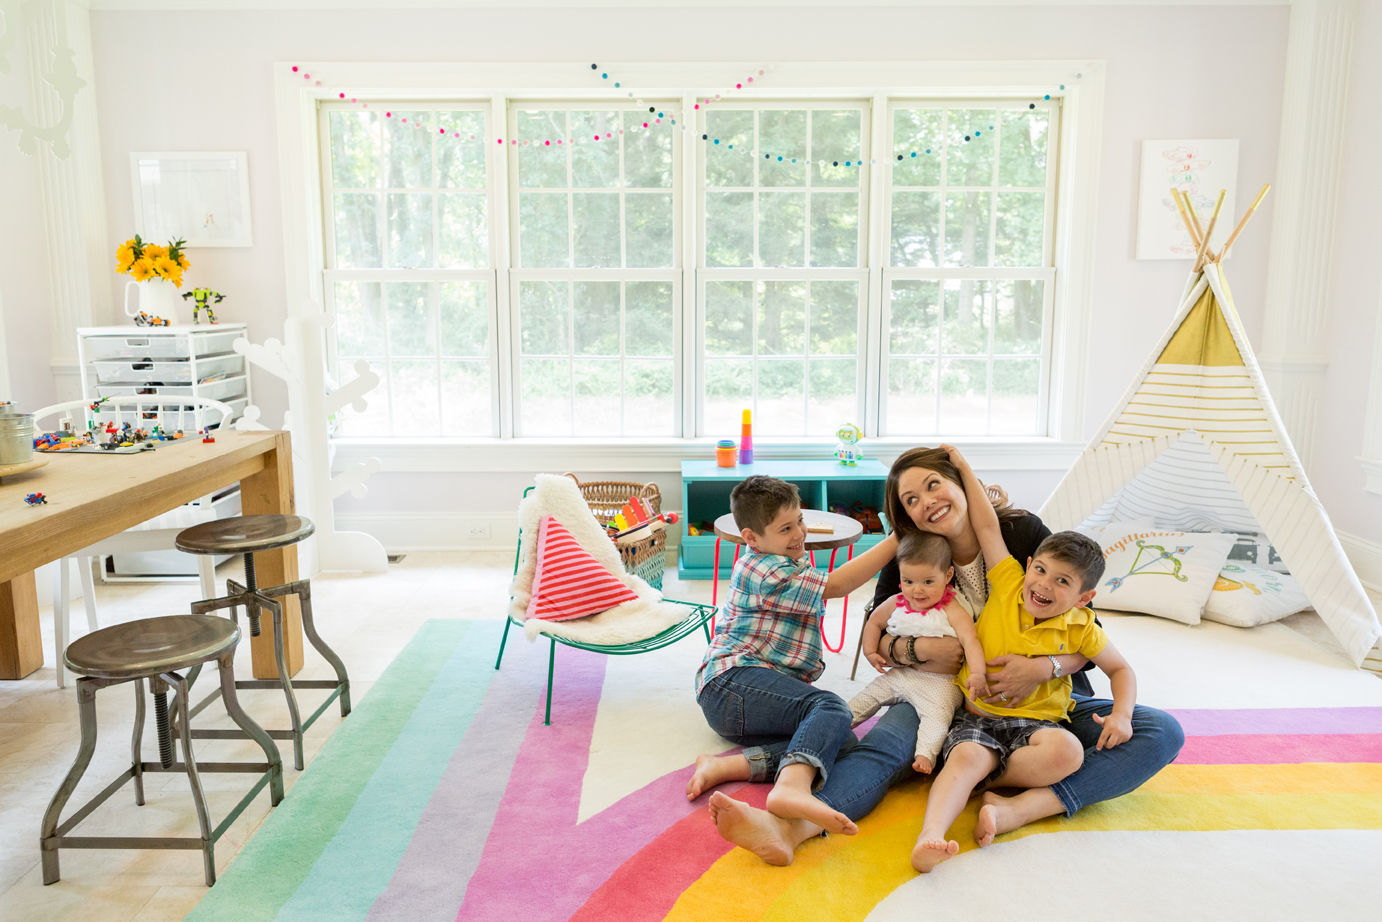 10 Amazing Kids Room Ideas: 5 Amazing Tips To Create The Perfect Playroom For Your Kids